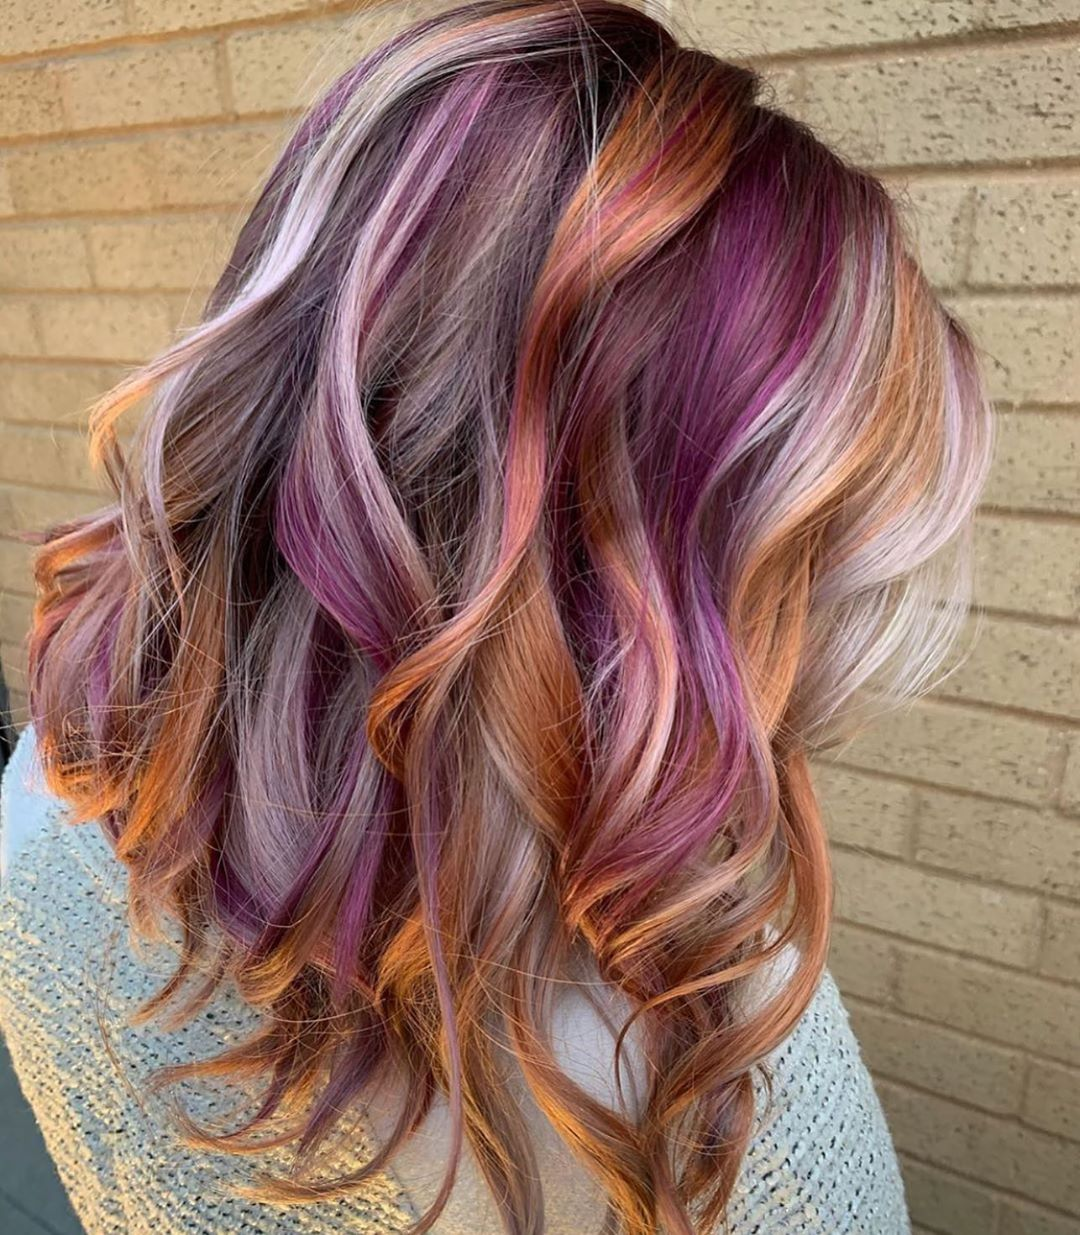 150 Honestly Easy hairstyle ideas for medium-length hair images 2